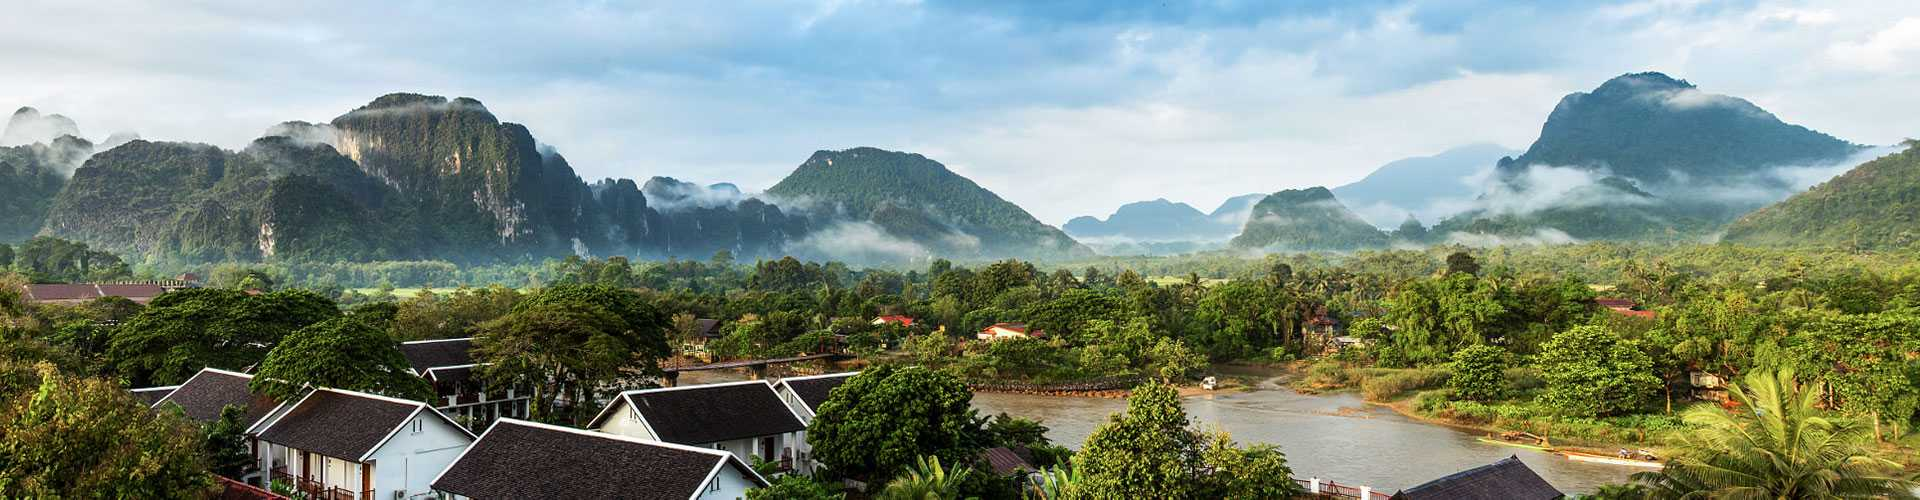 vang vieng attraction b24